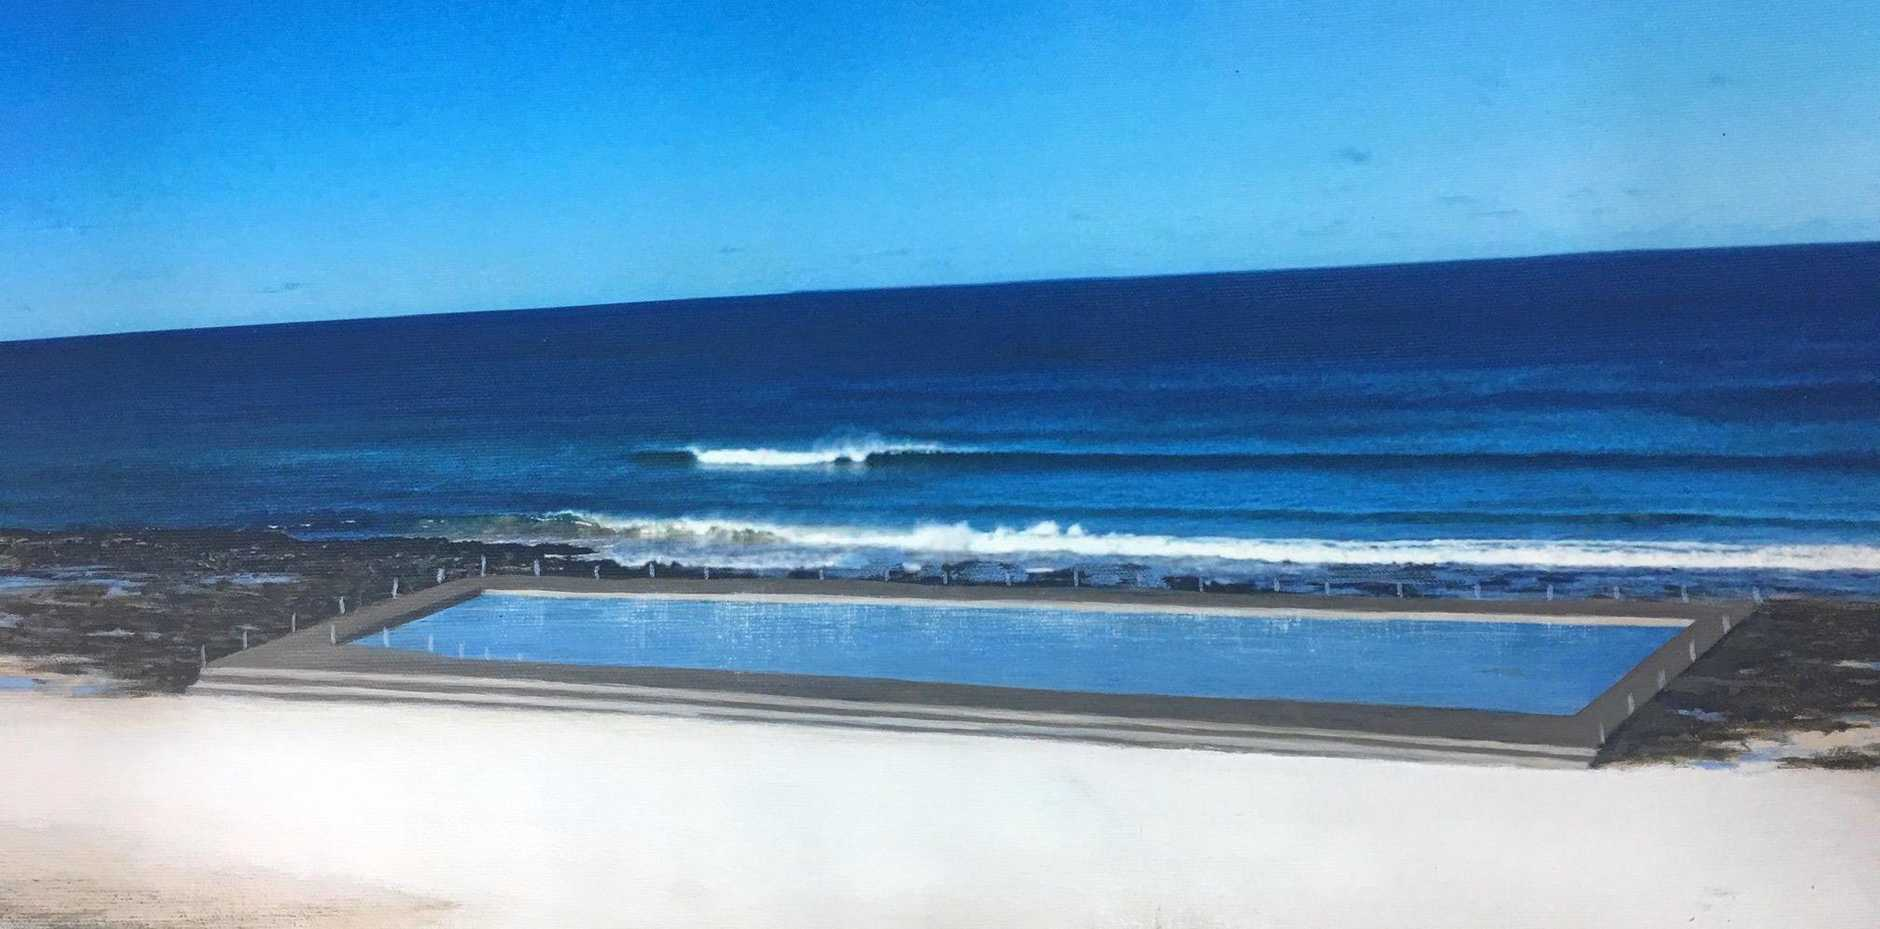 An earlier artist's impression of the proposed Ballina Ocean Pool.